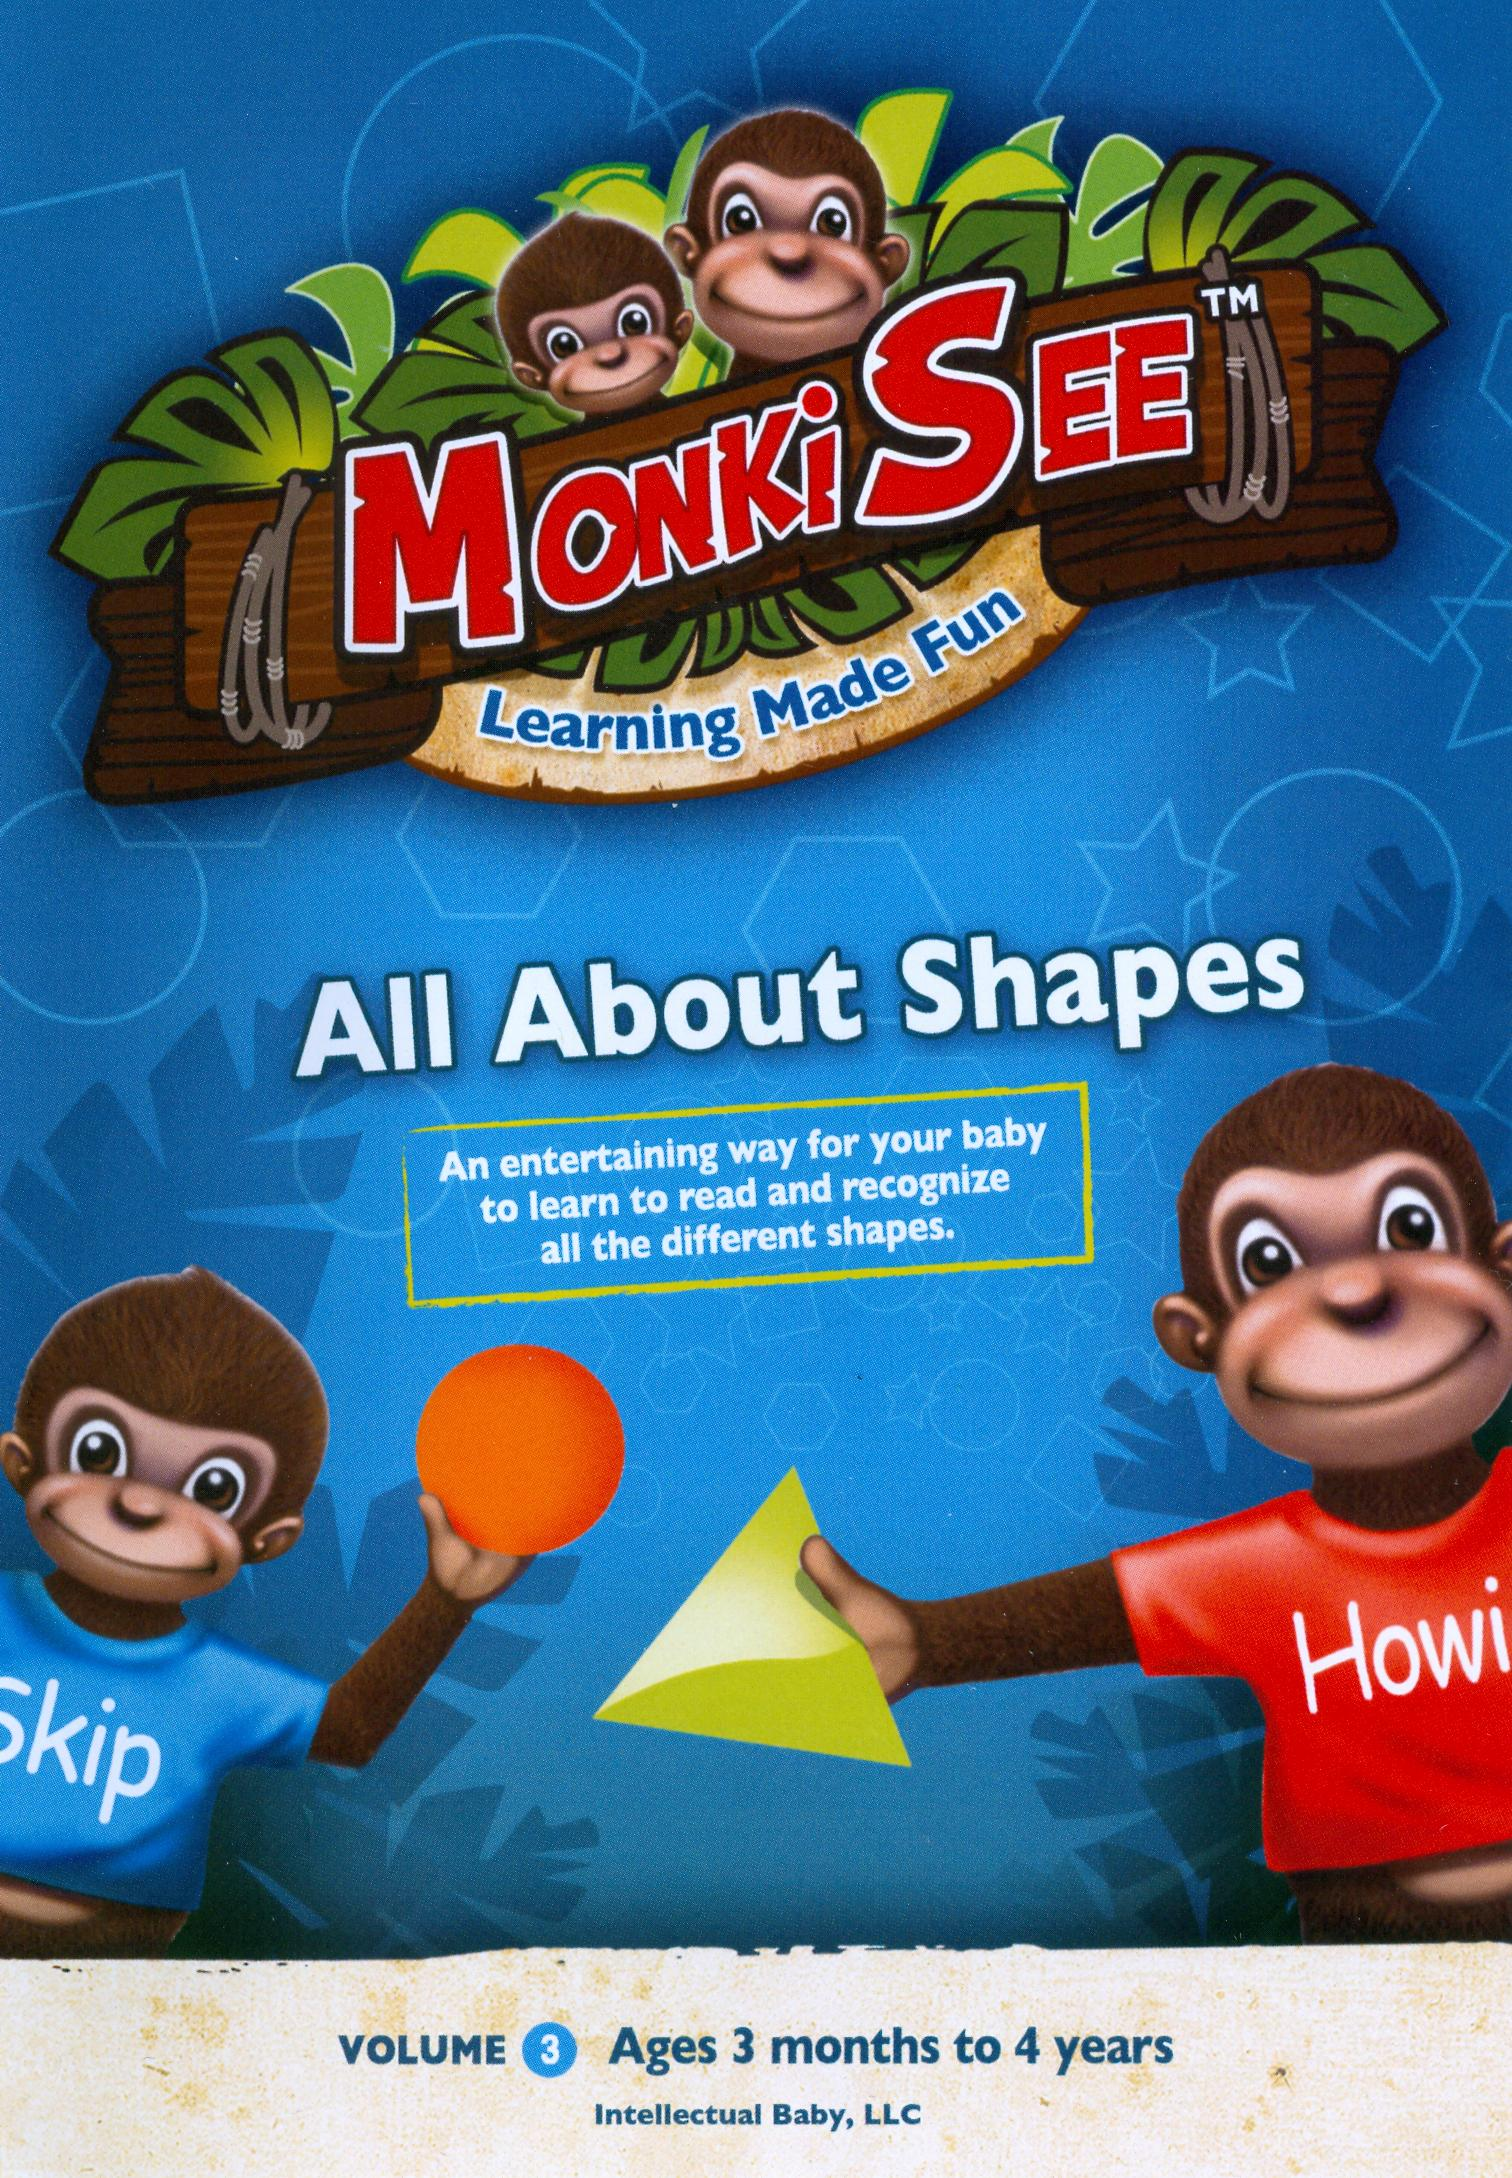 MonkiSee: All About Shapes